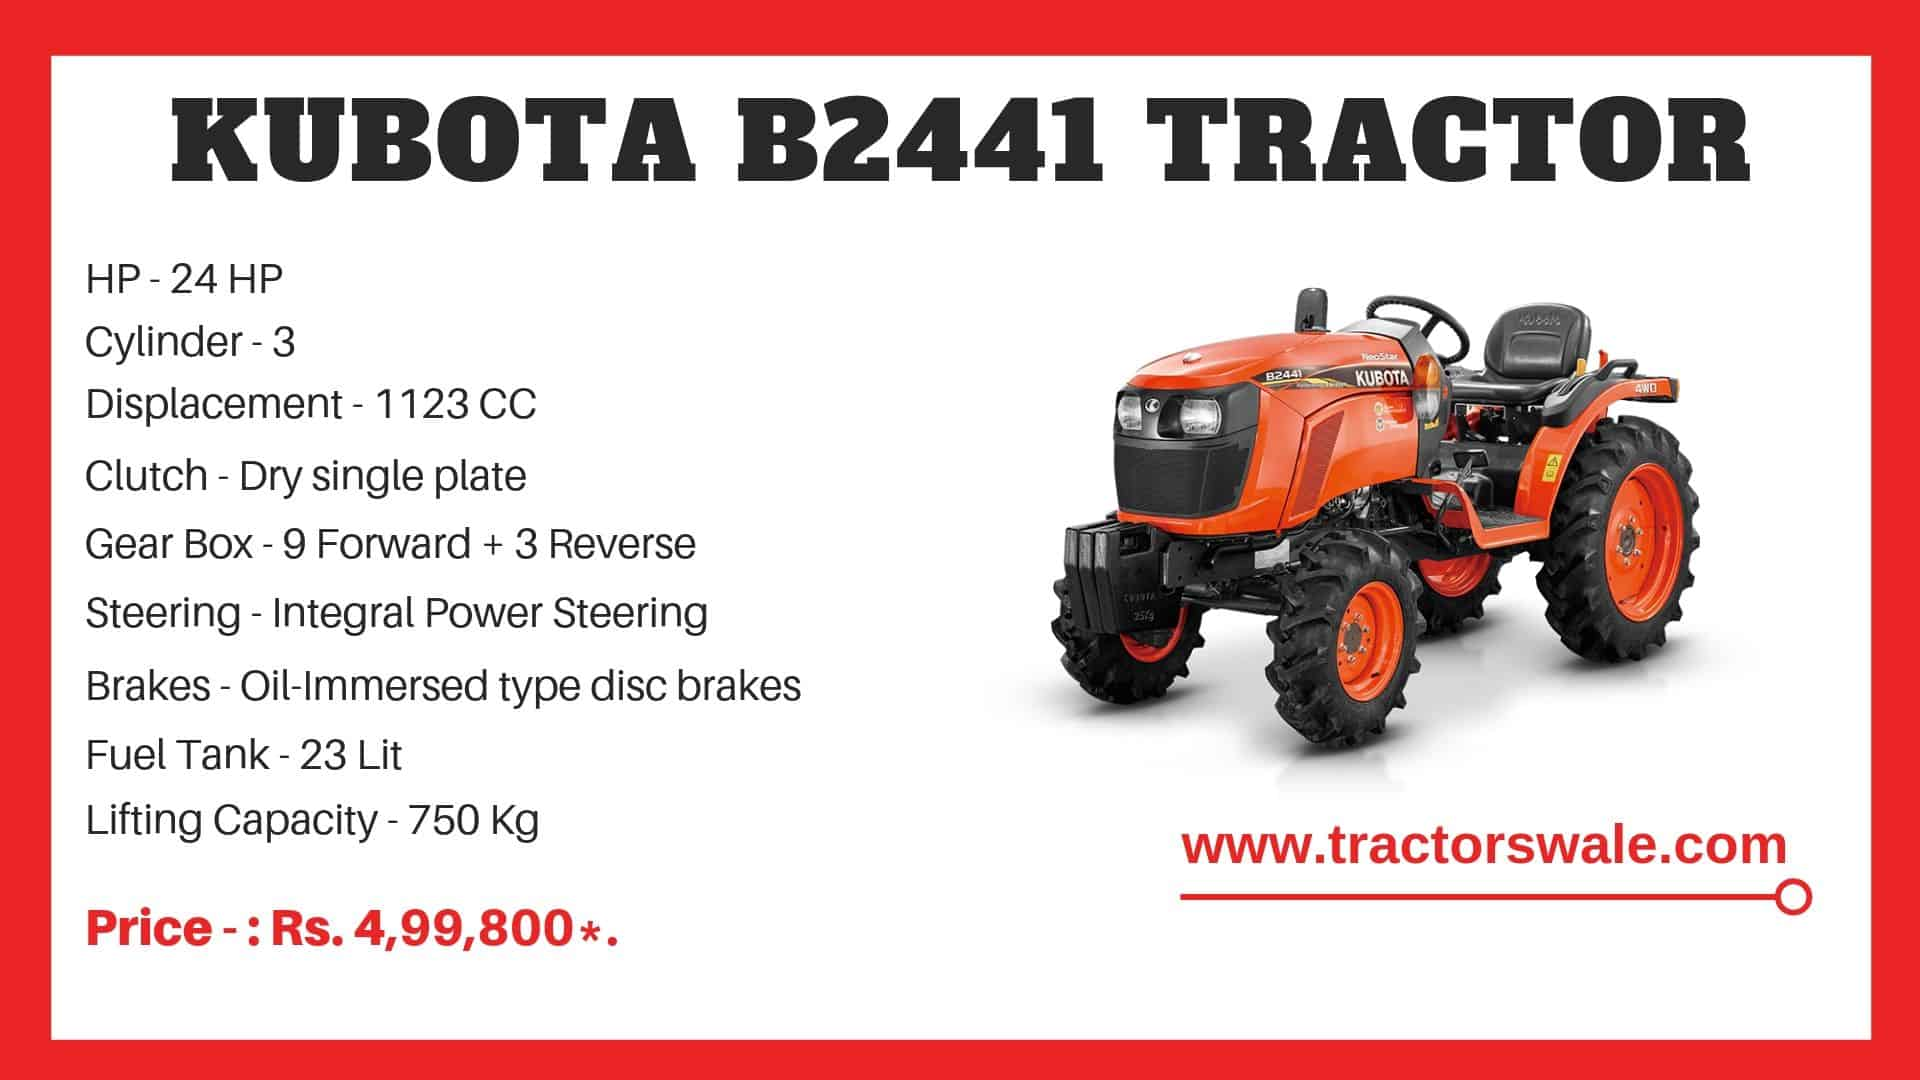 Specifications Of Kubota NeoStar B2441 Tractor